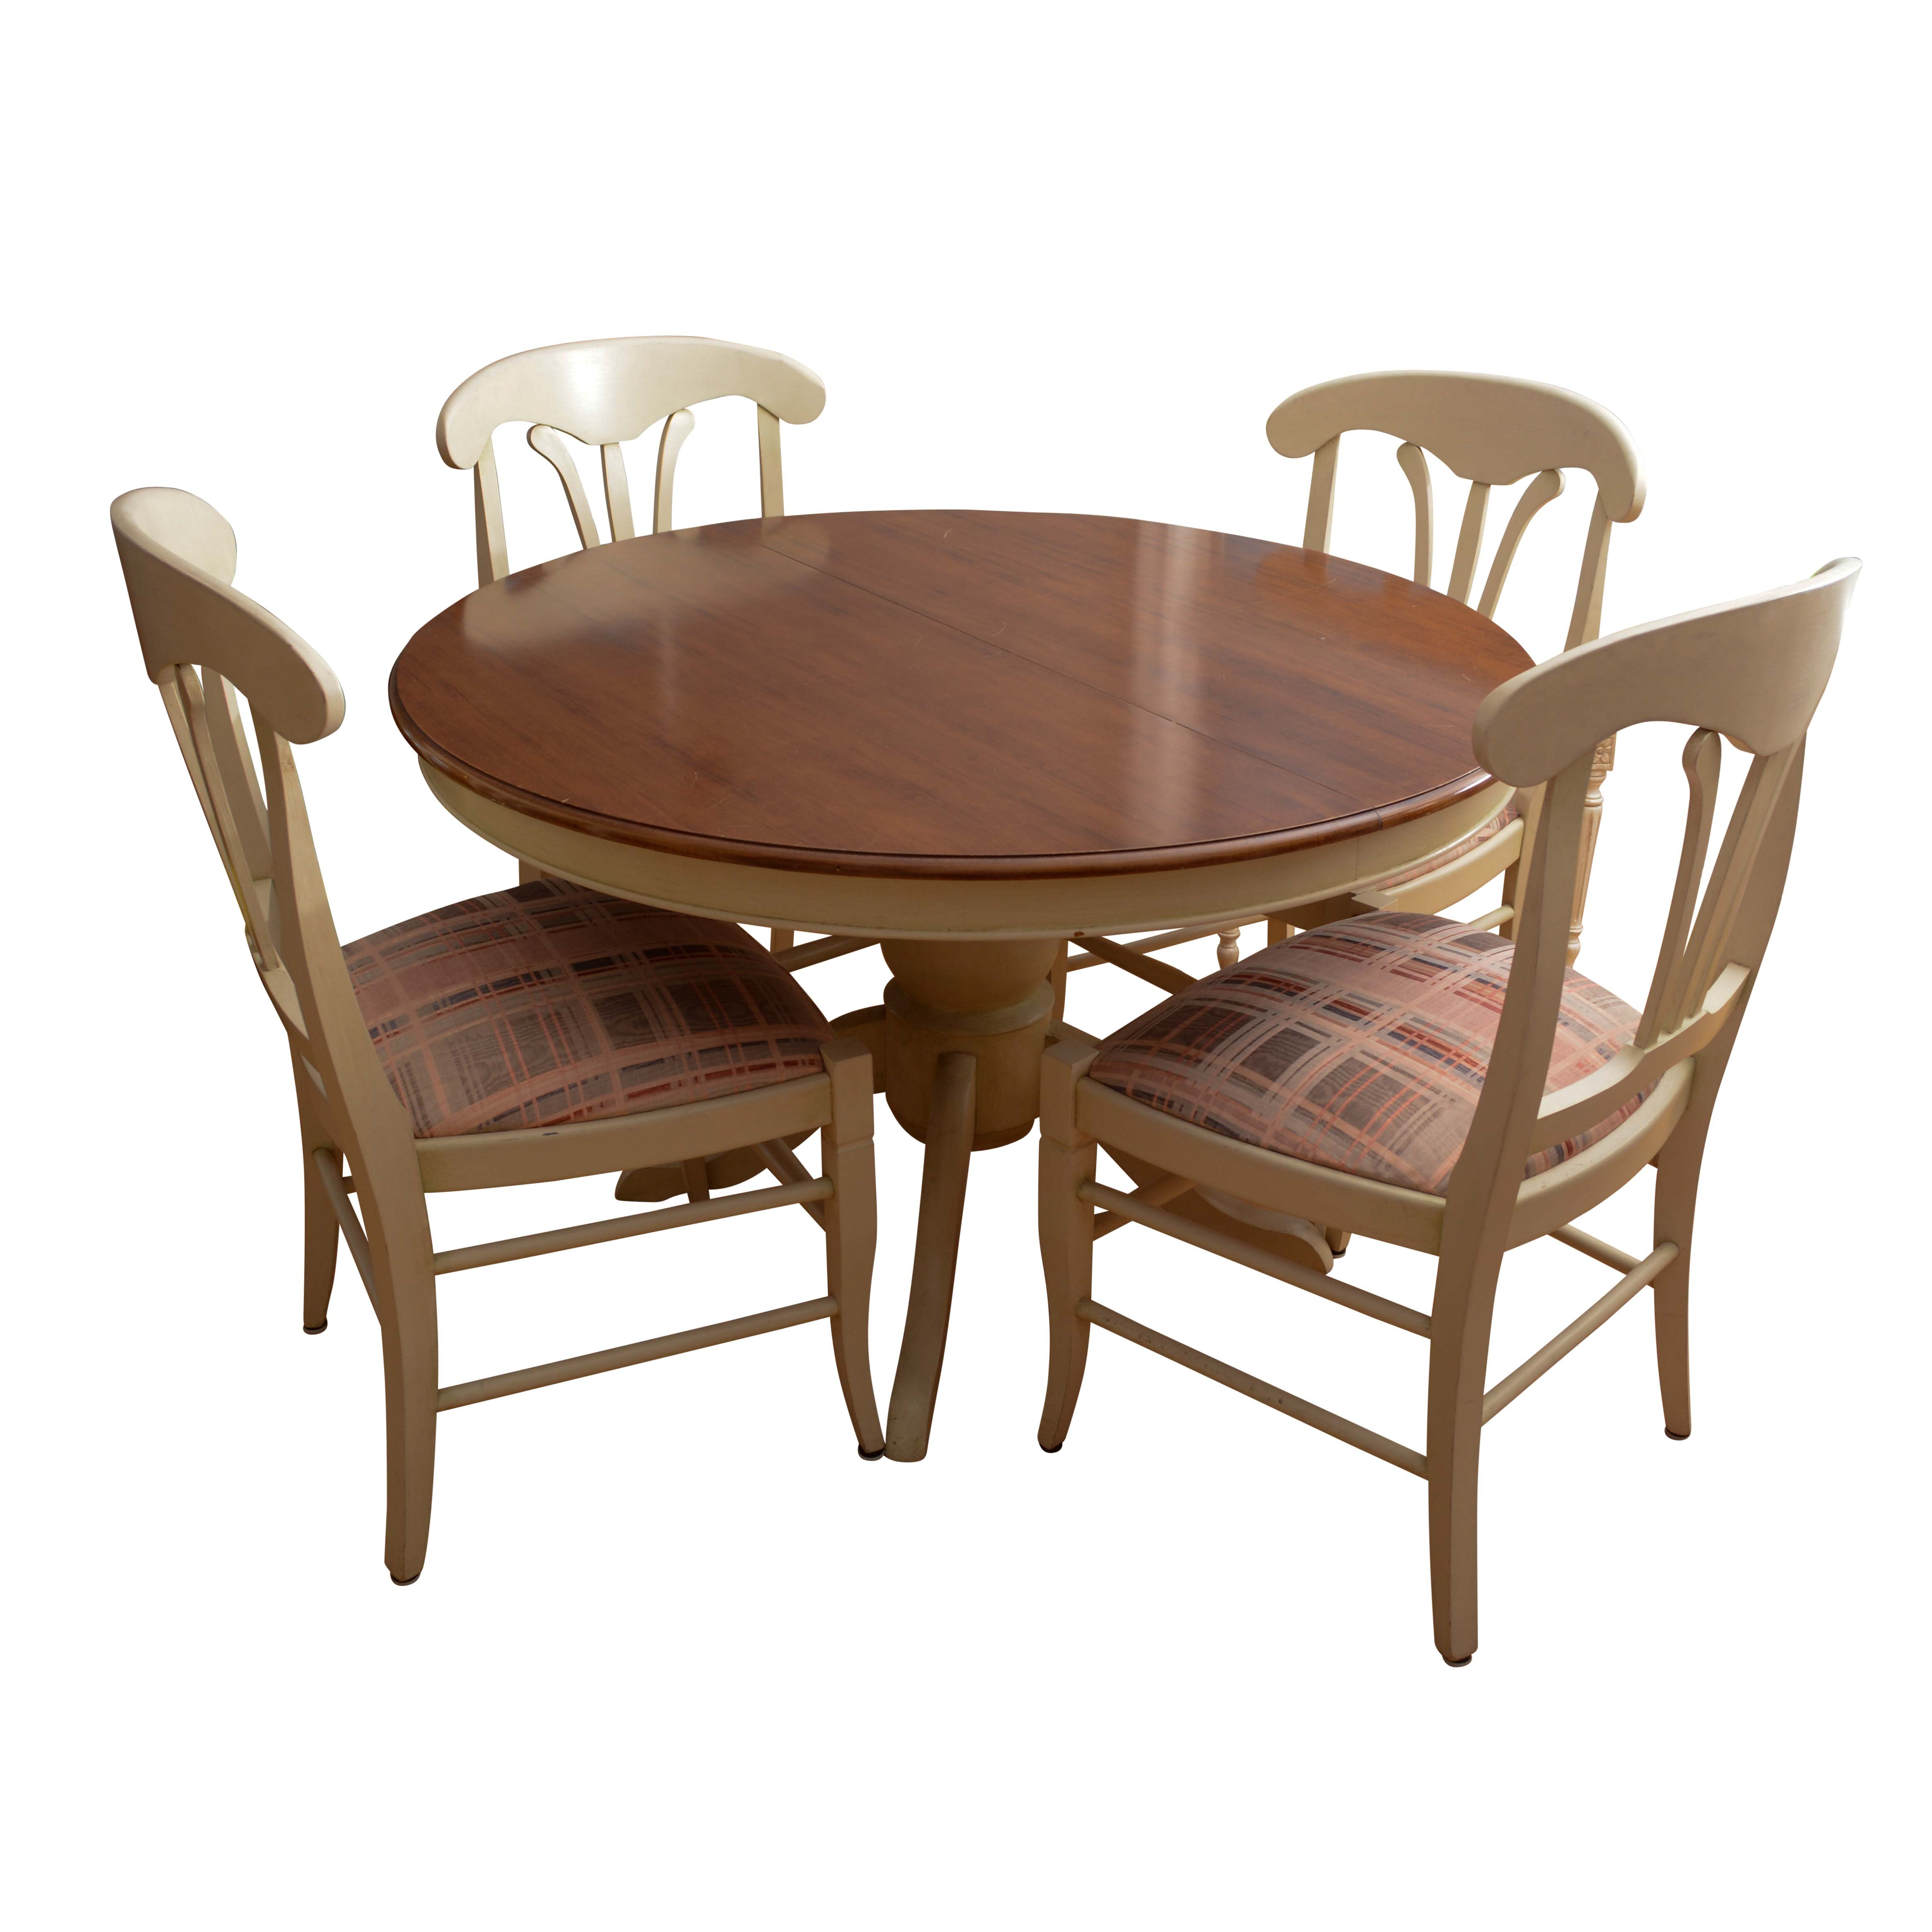 Farmhouse Style Pedestal Dining Table with Chairs by Buying & Design